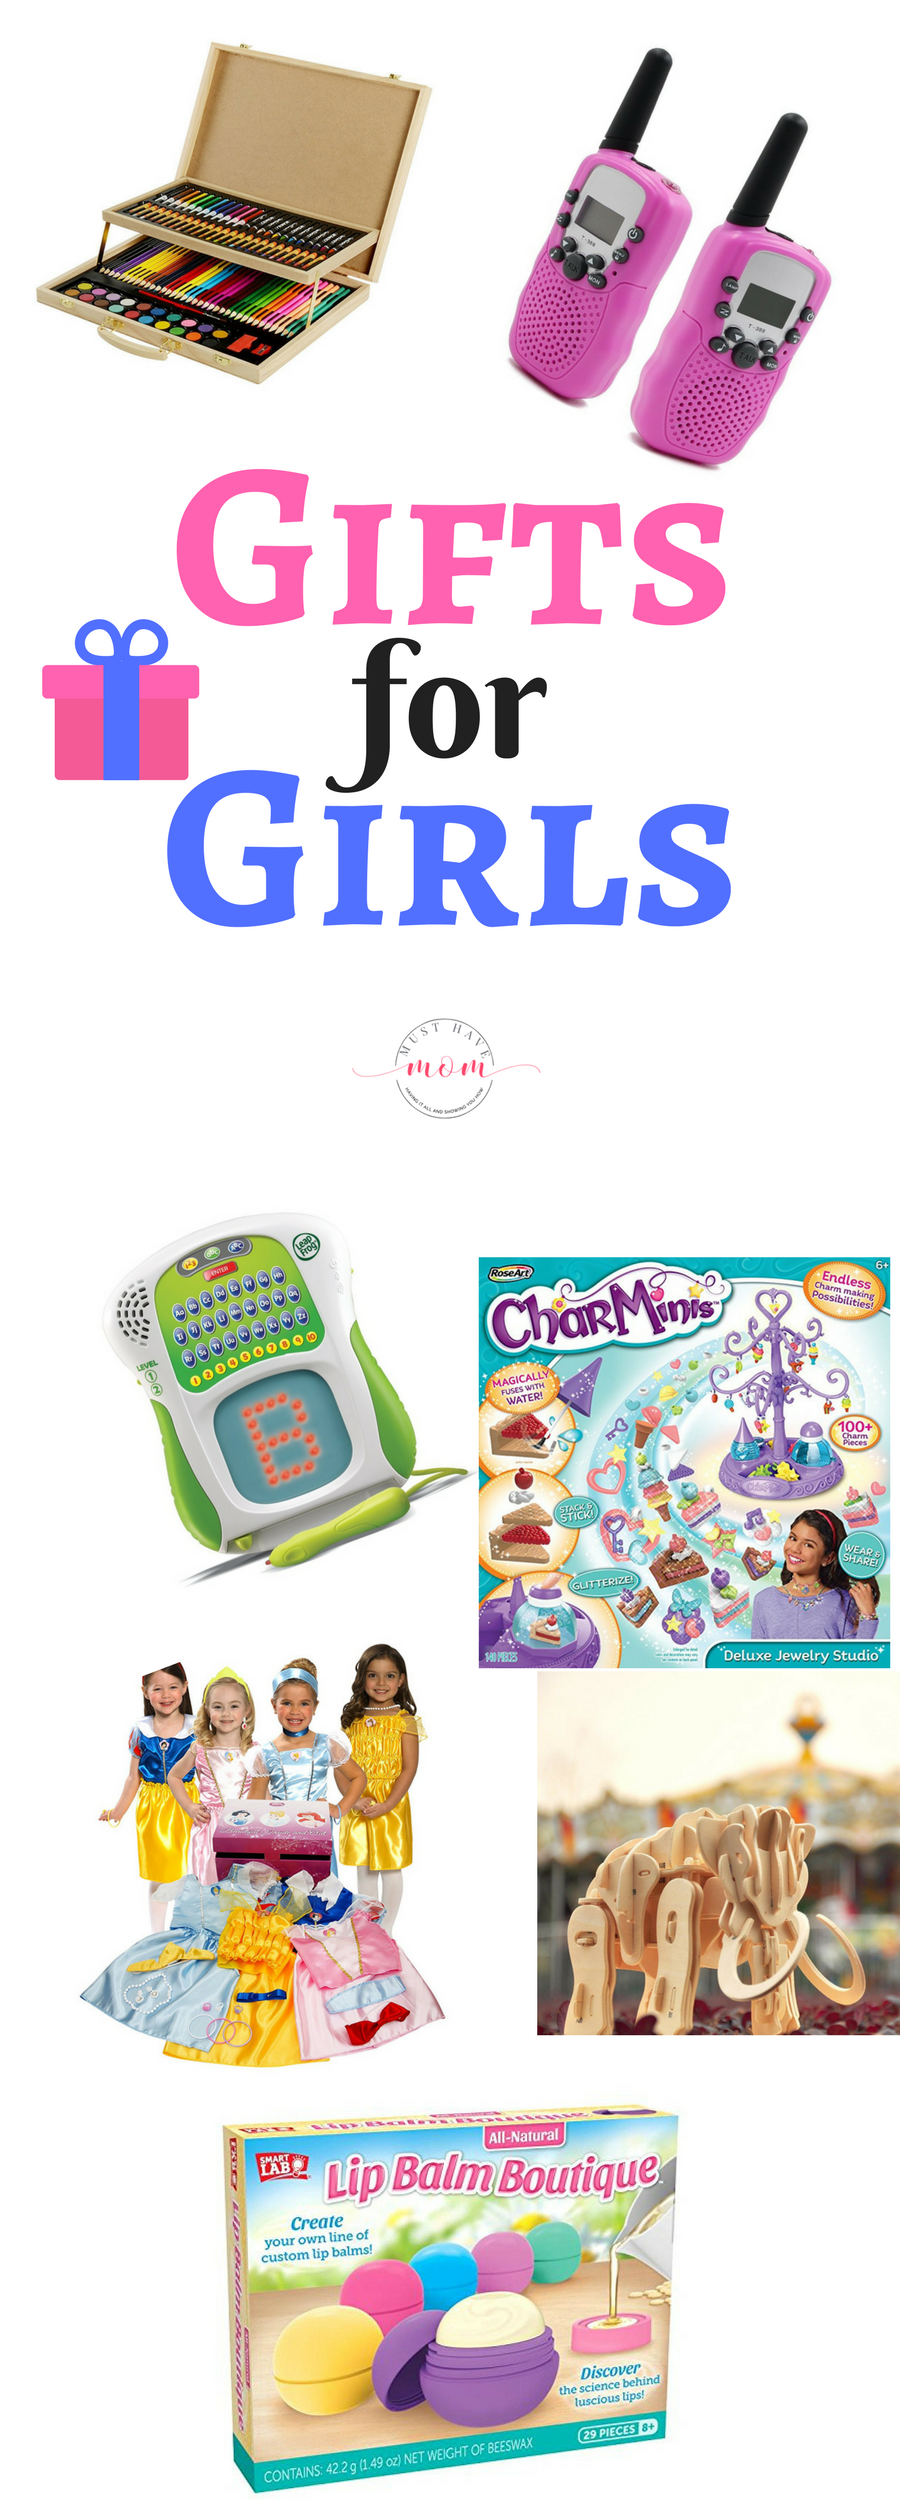 If you have are still scrambling to find some gifts for girls that are sure to please, I'm here to help. Check out this gift for girls guide.